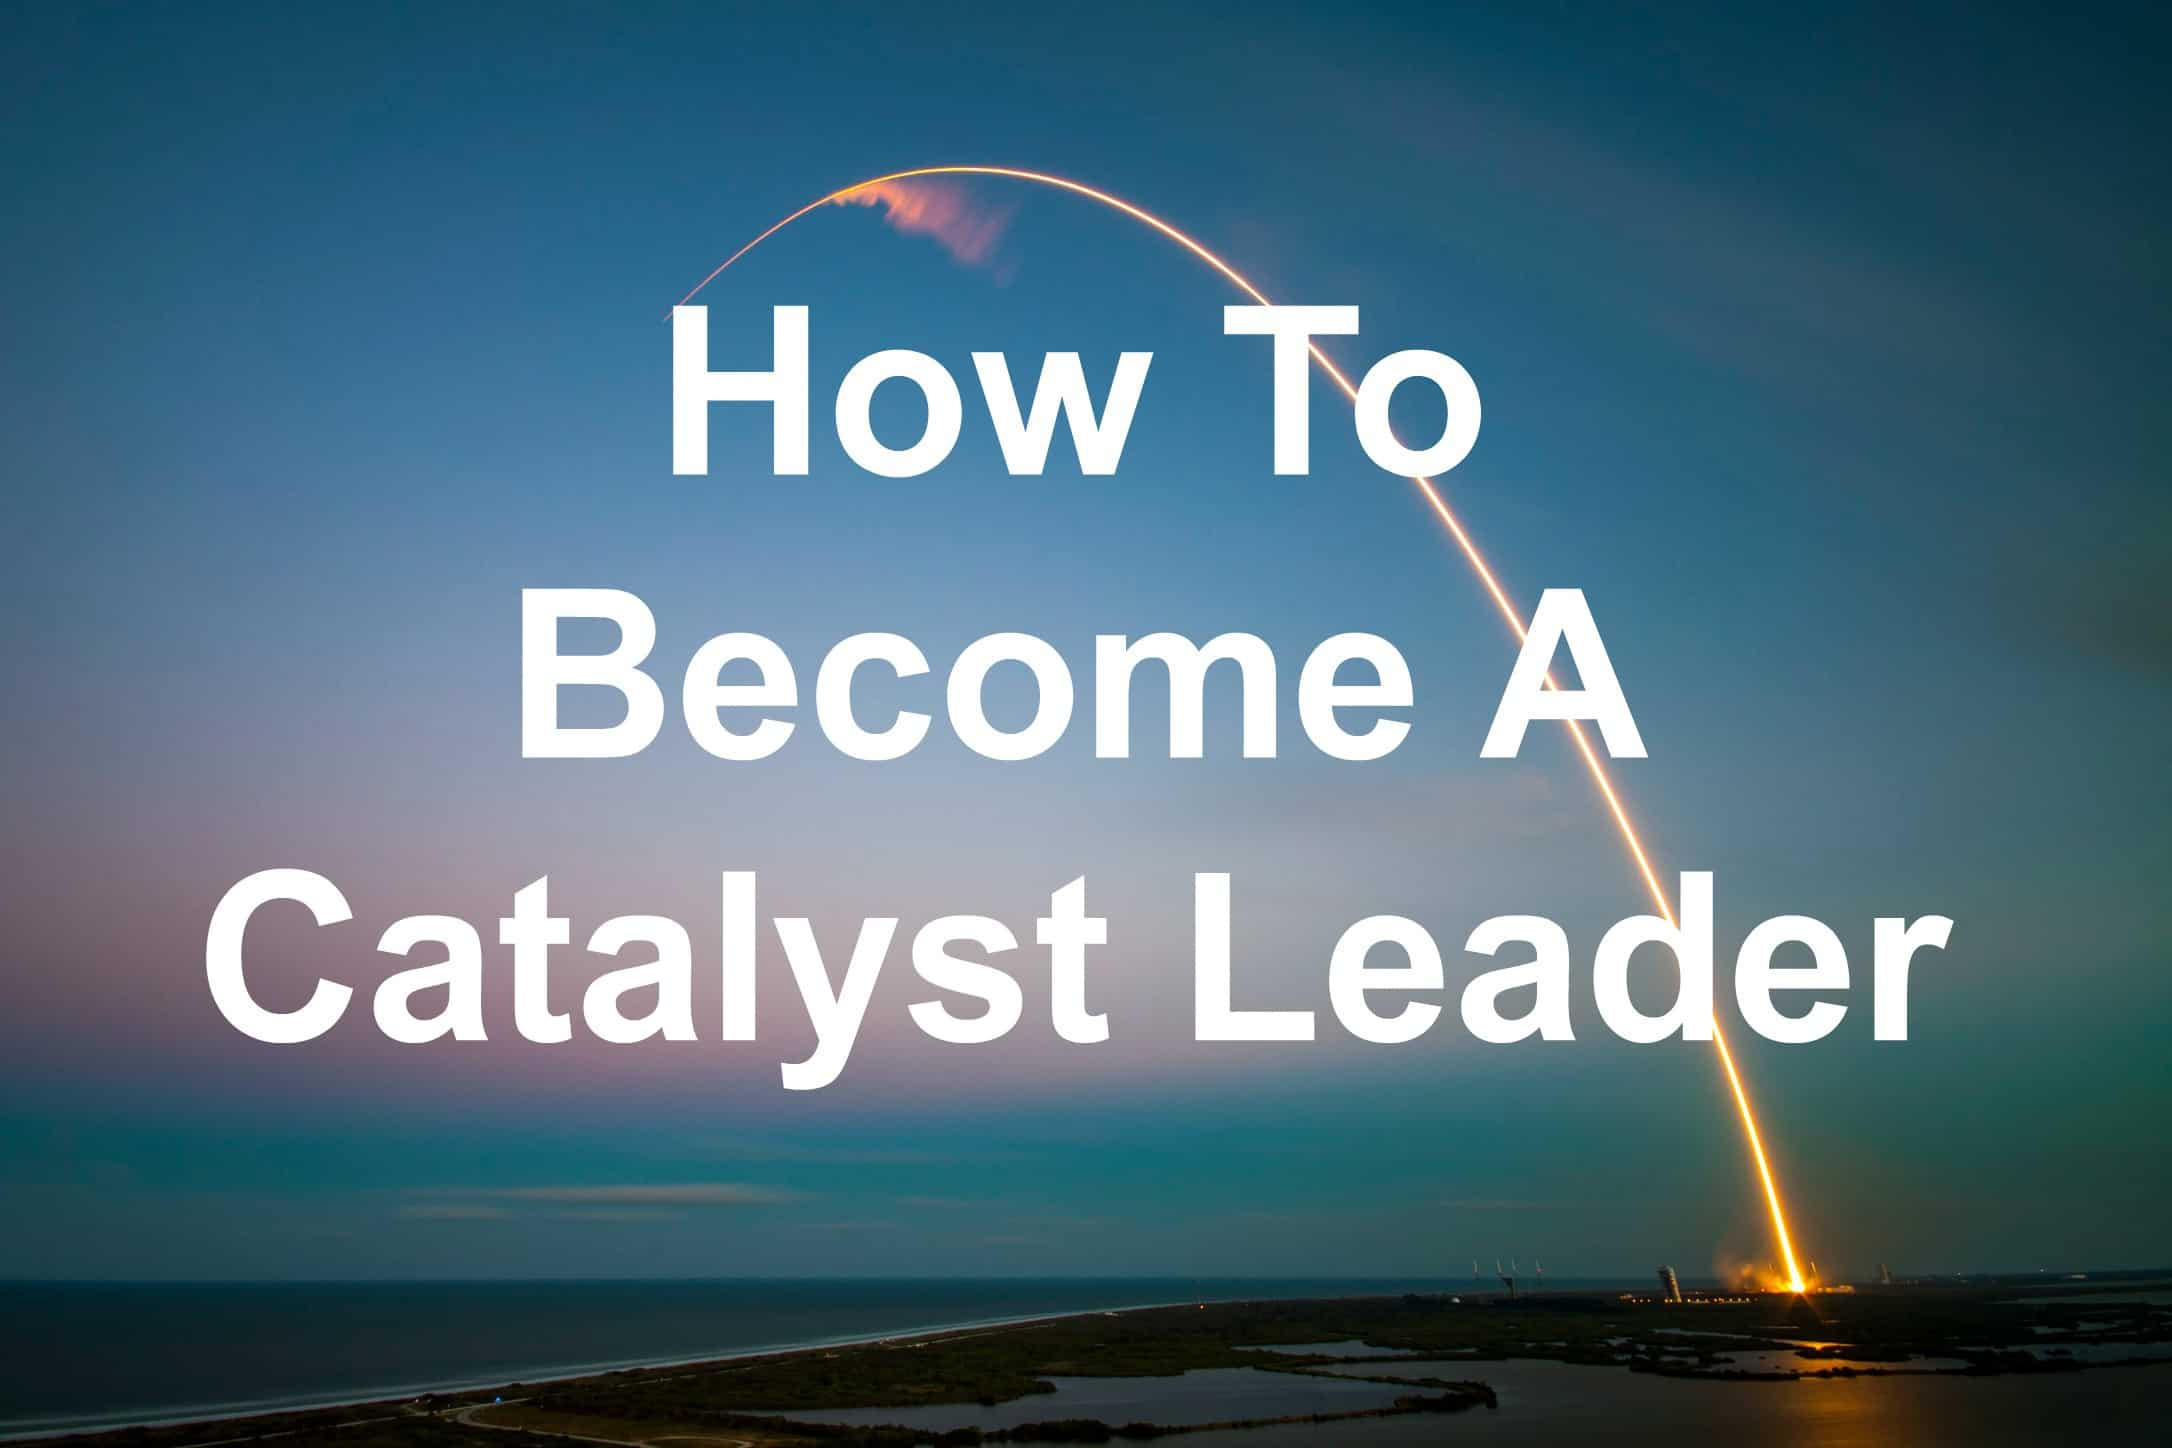 You can be a catalyst leader